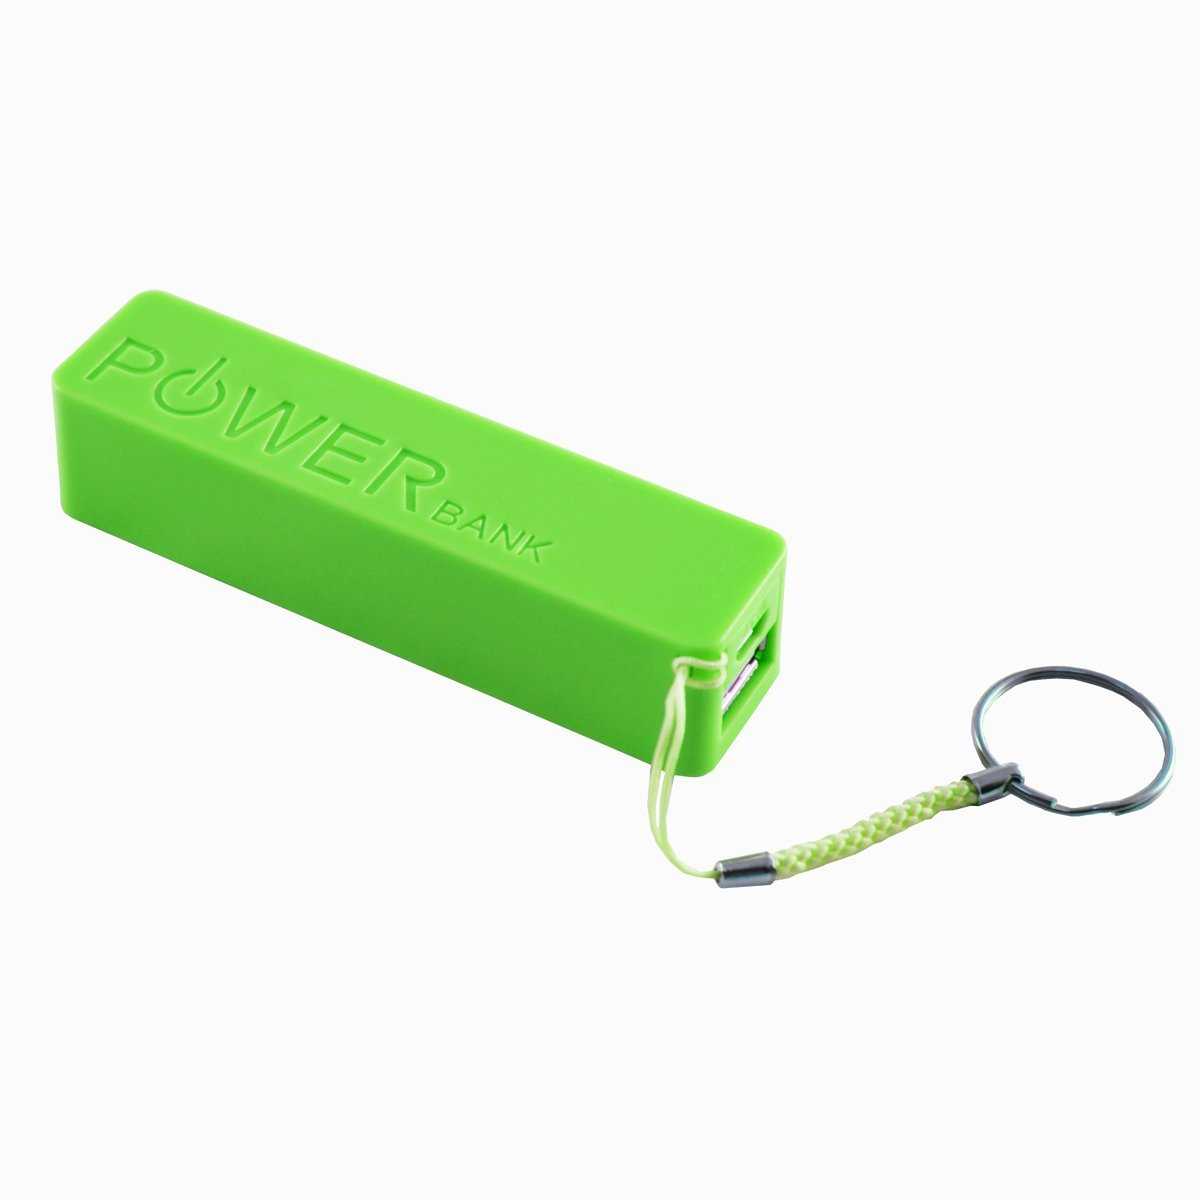 Power Bank A5 Portable Charger for Sale in Jamaica ...